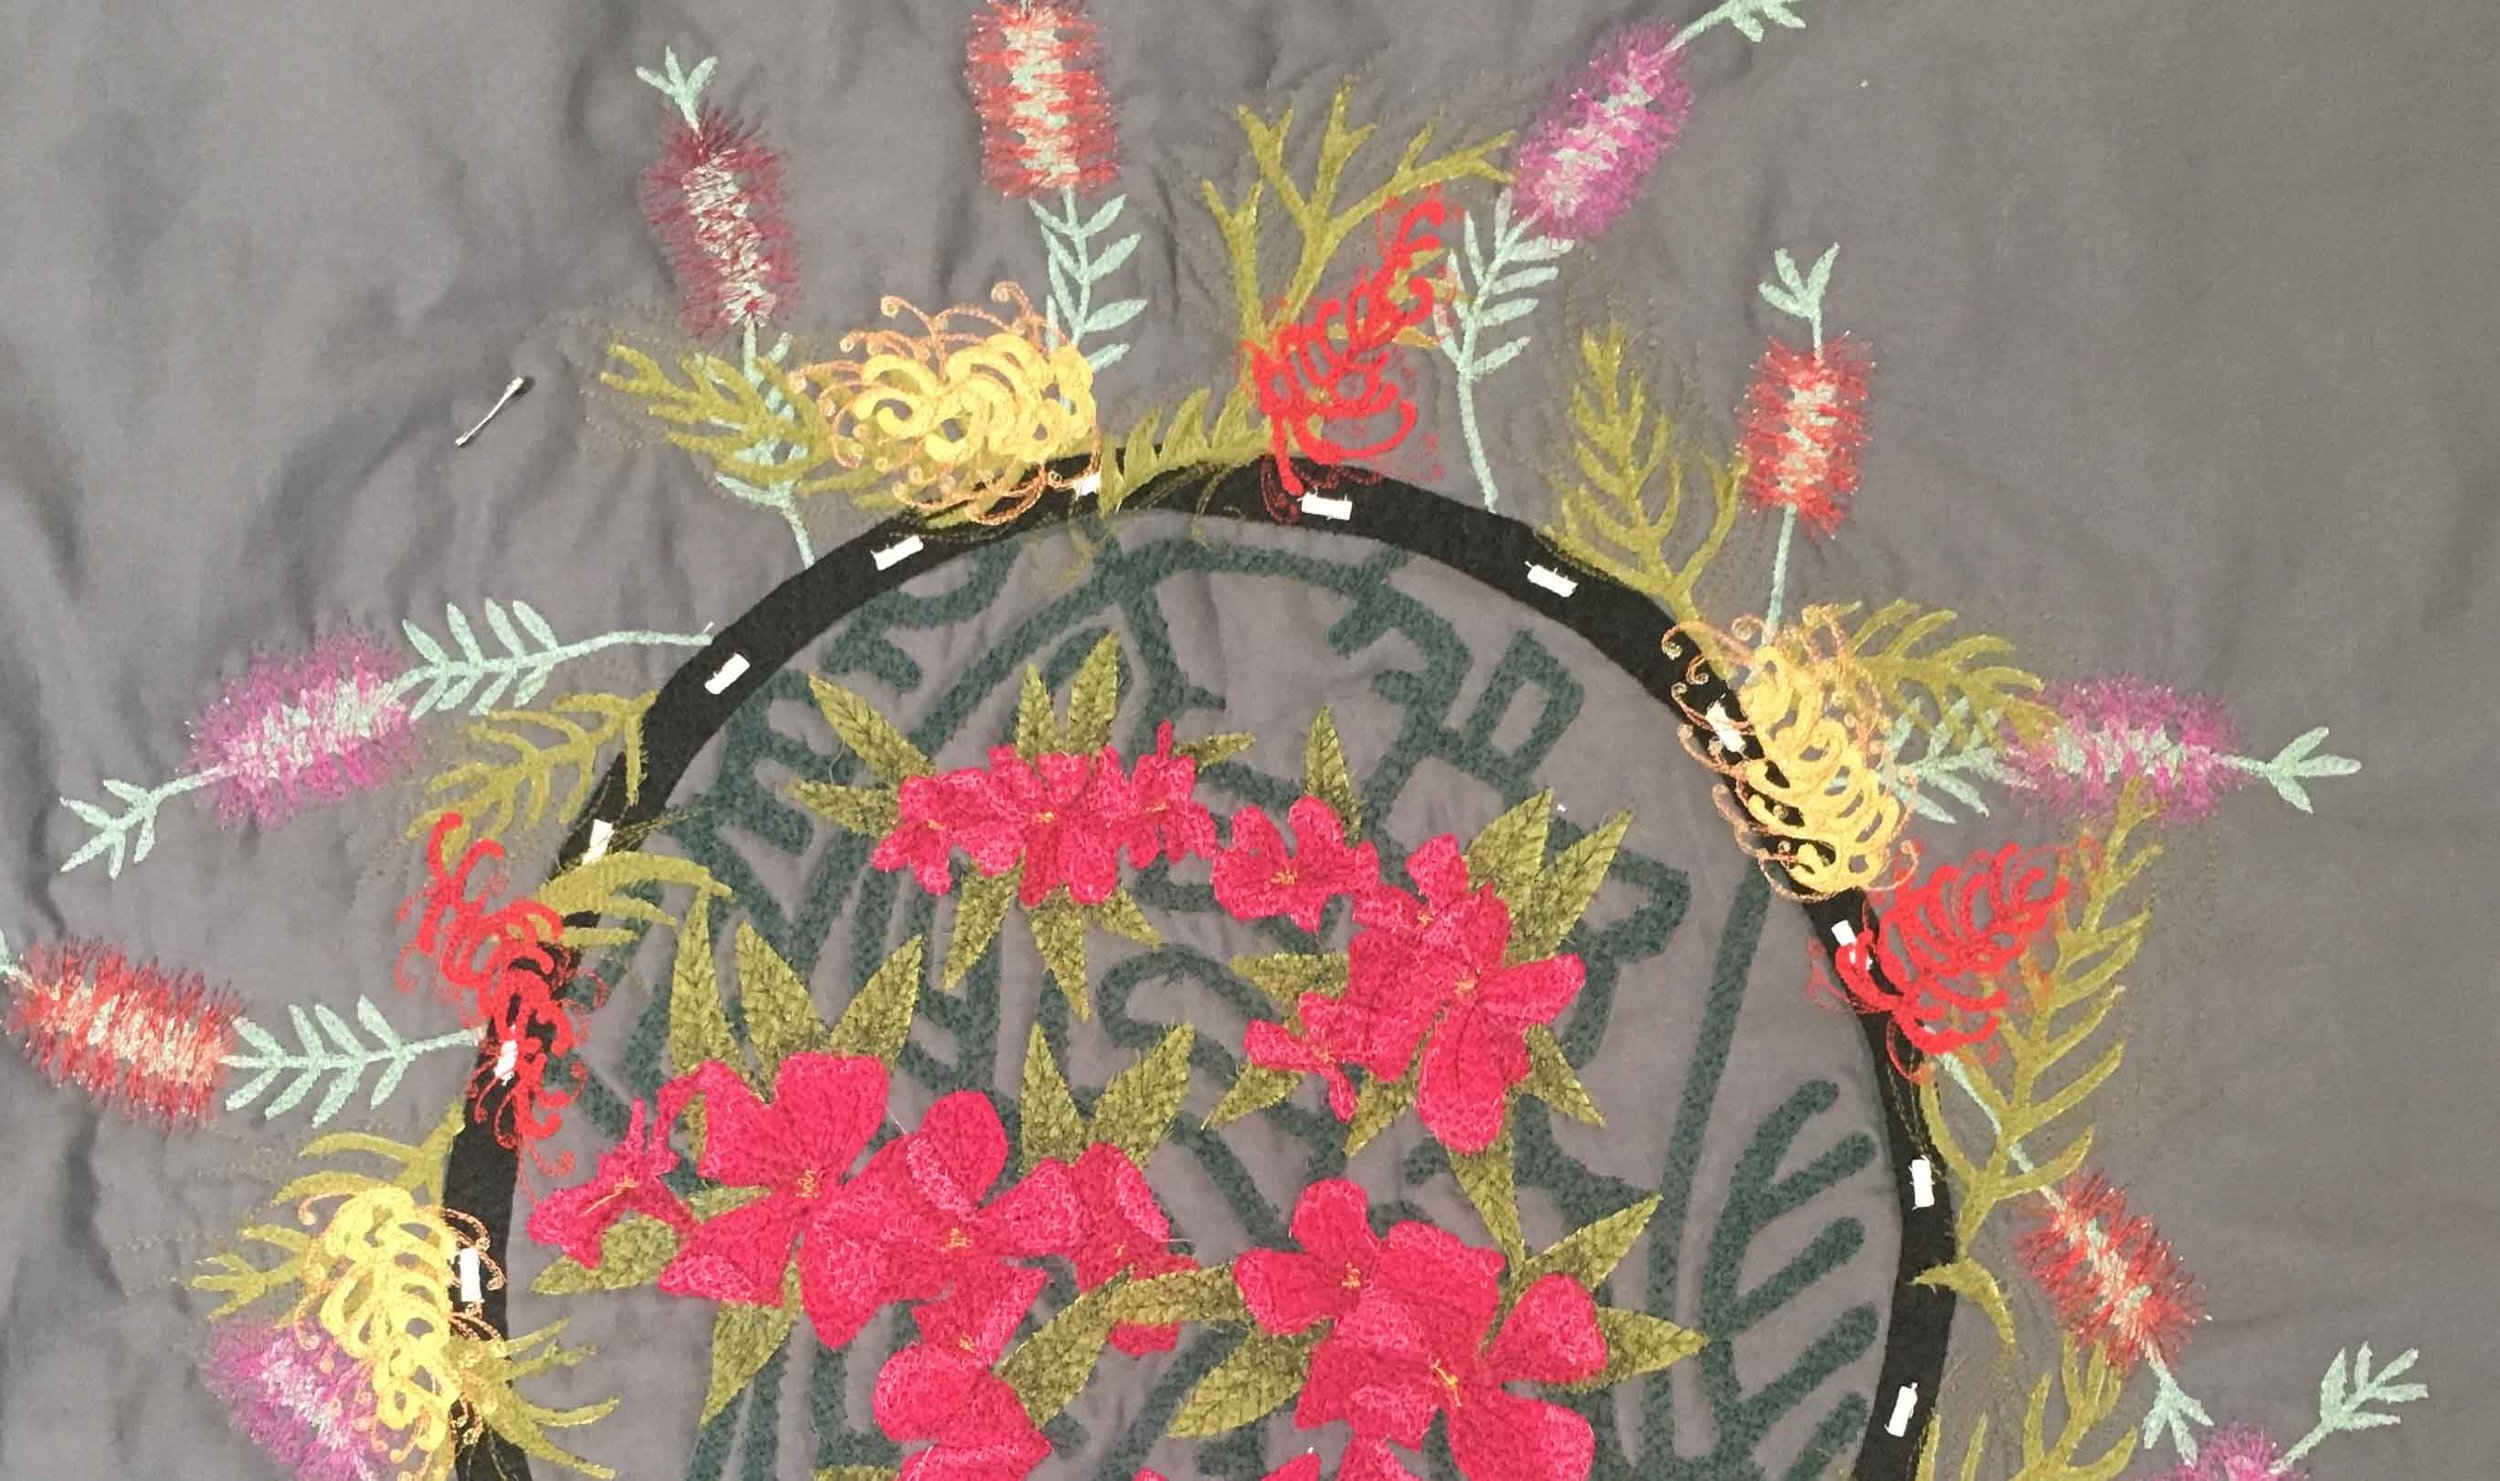 Work in progress- bottlebrush, grevillea and oleander